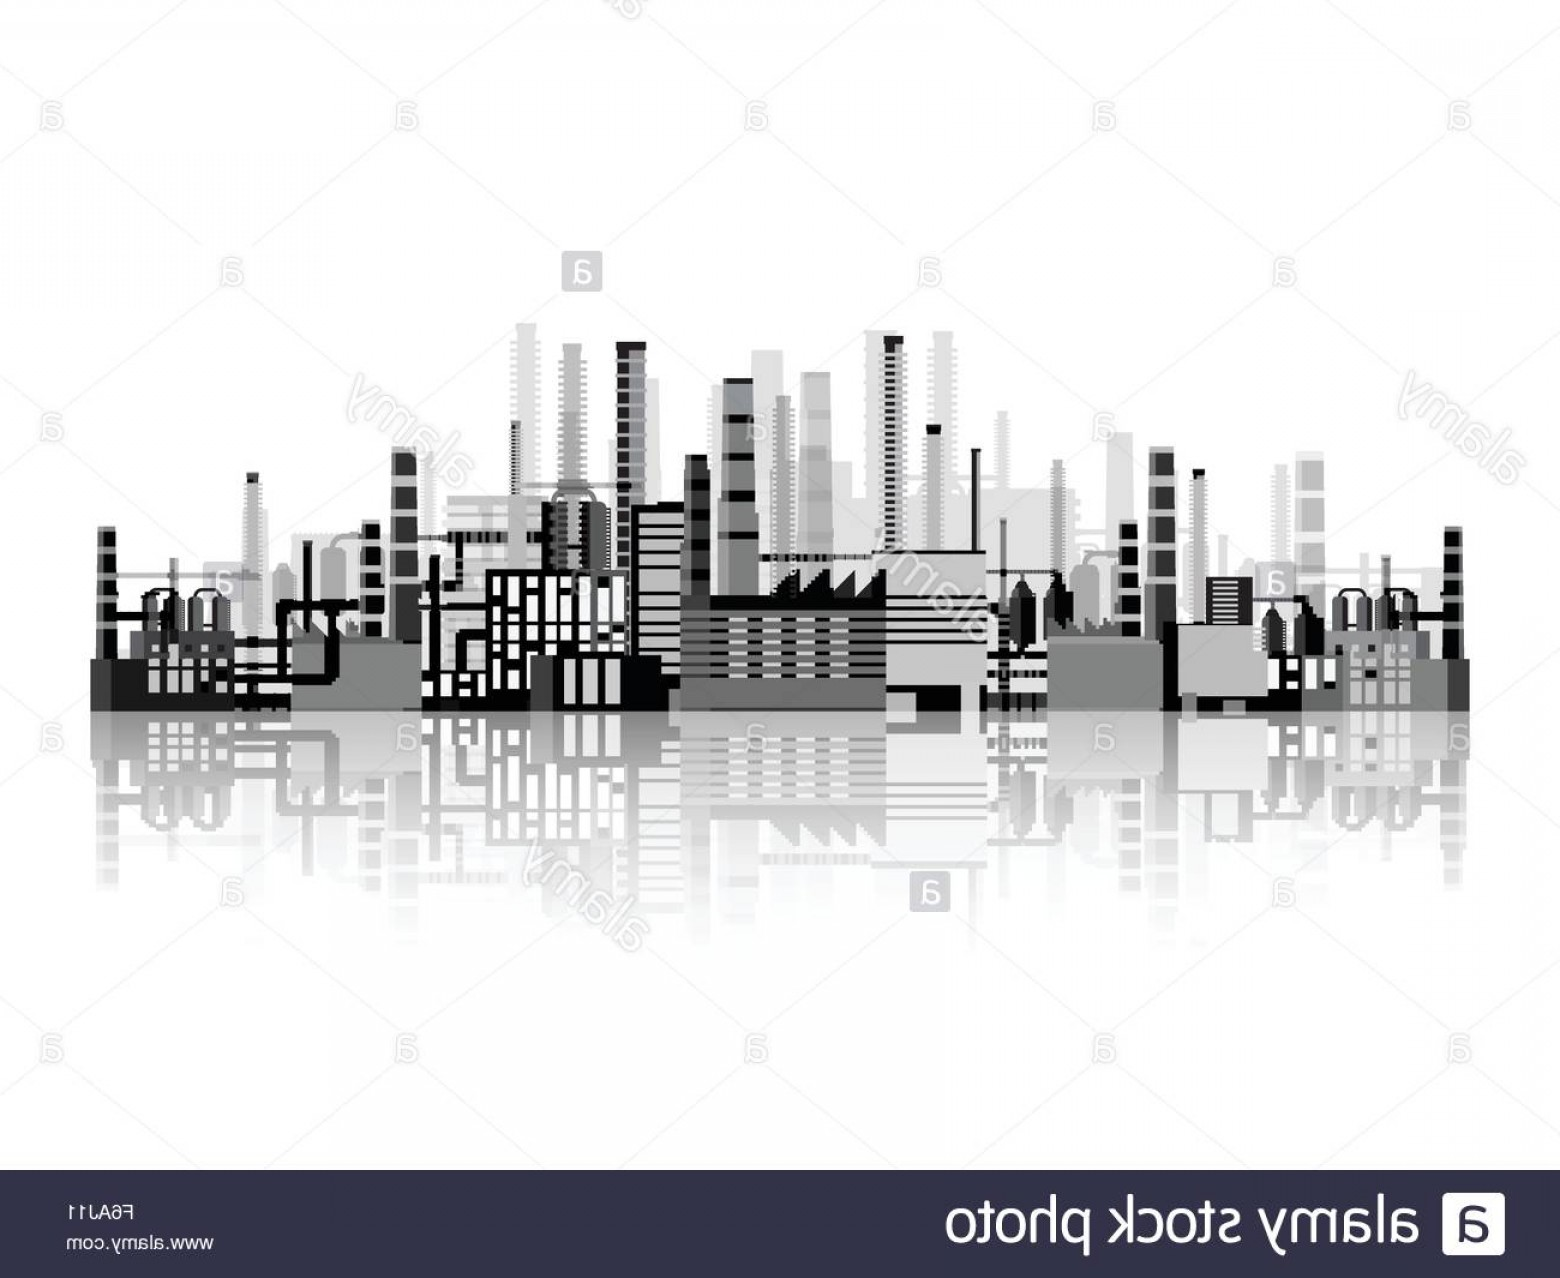 Factory Vector Skyline: Stock Photo Vector Illustration Industry Power Plant Factory Industrial Silhouettes